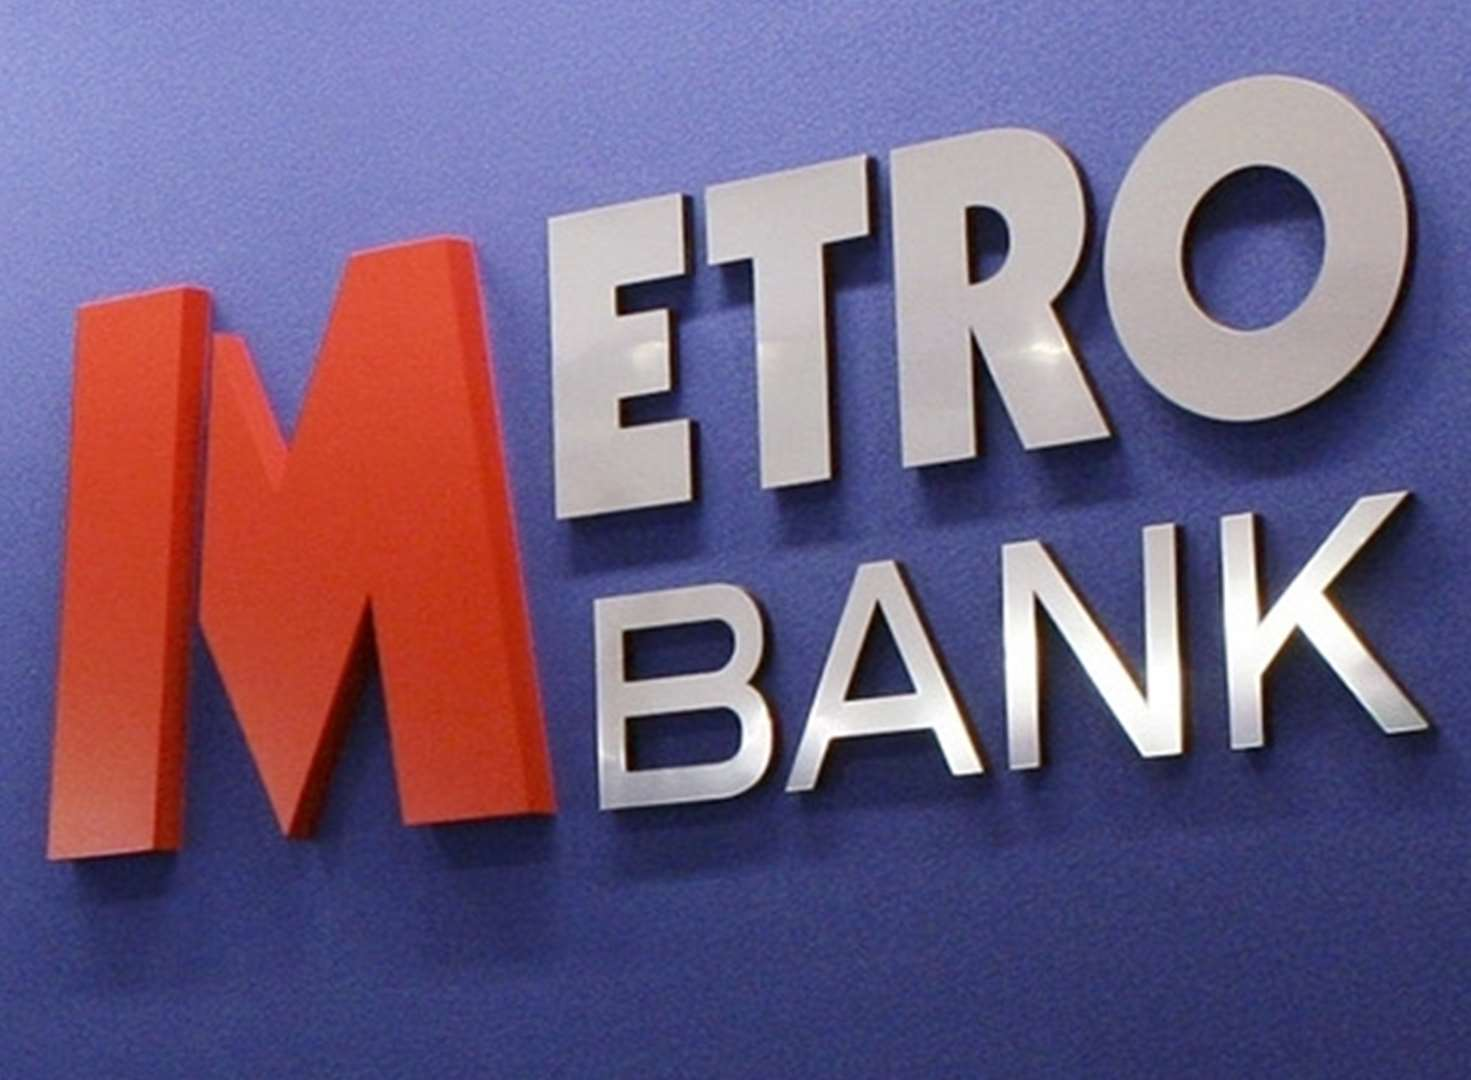 Metro Bank to open new branch